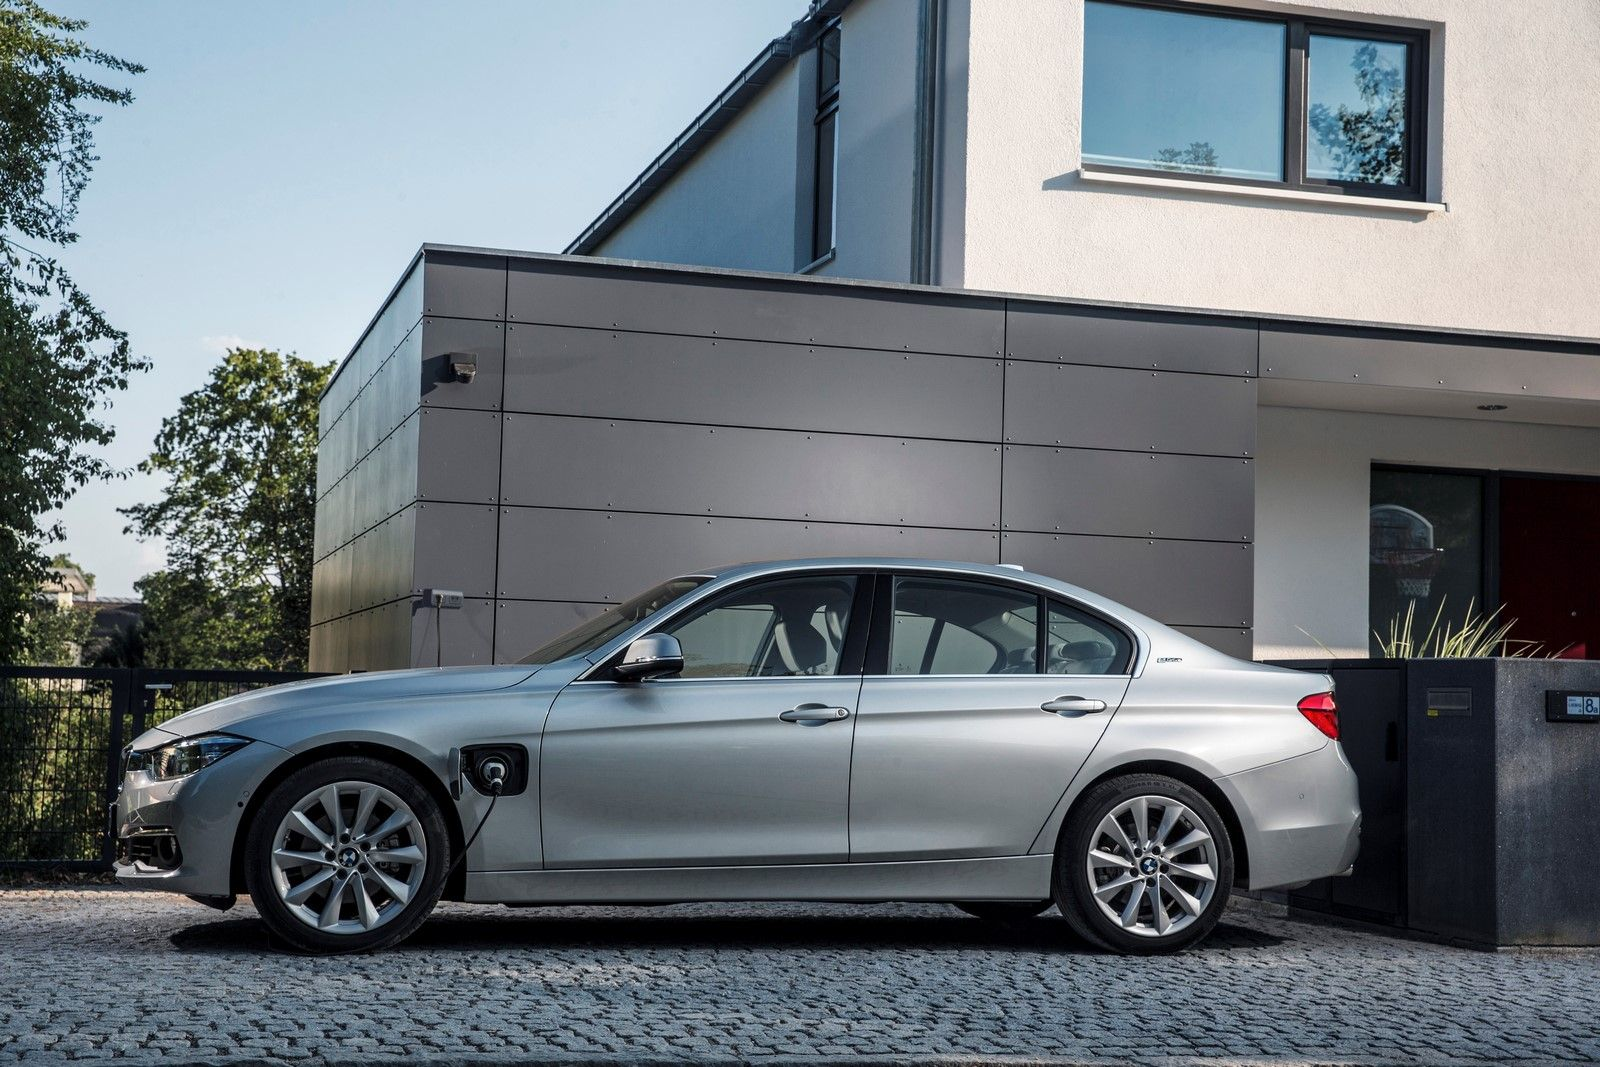 2016 Bmw 3 Series Edrive 330 Gets Priced At Us 44 695